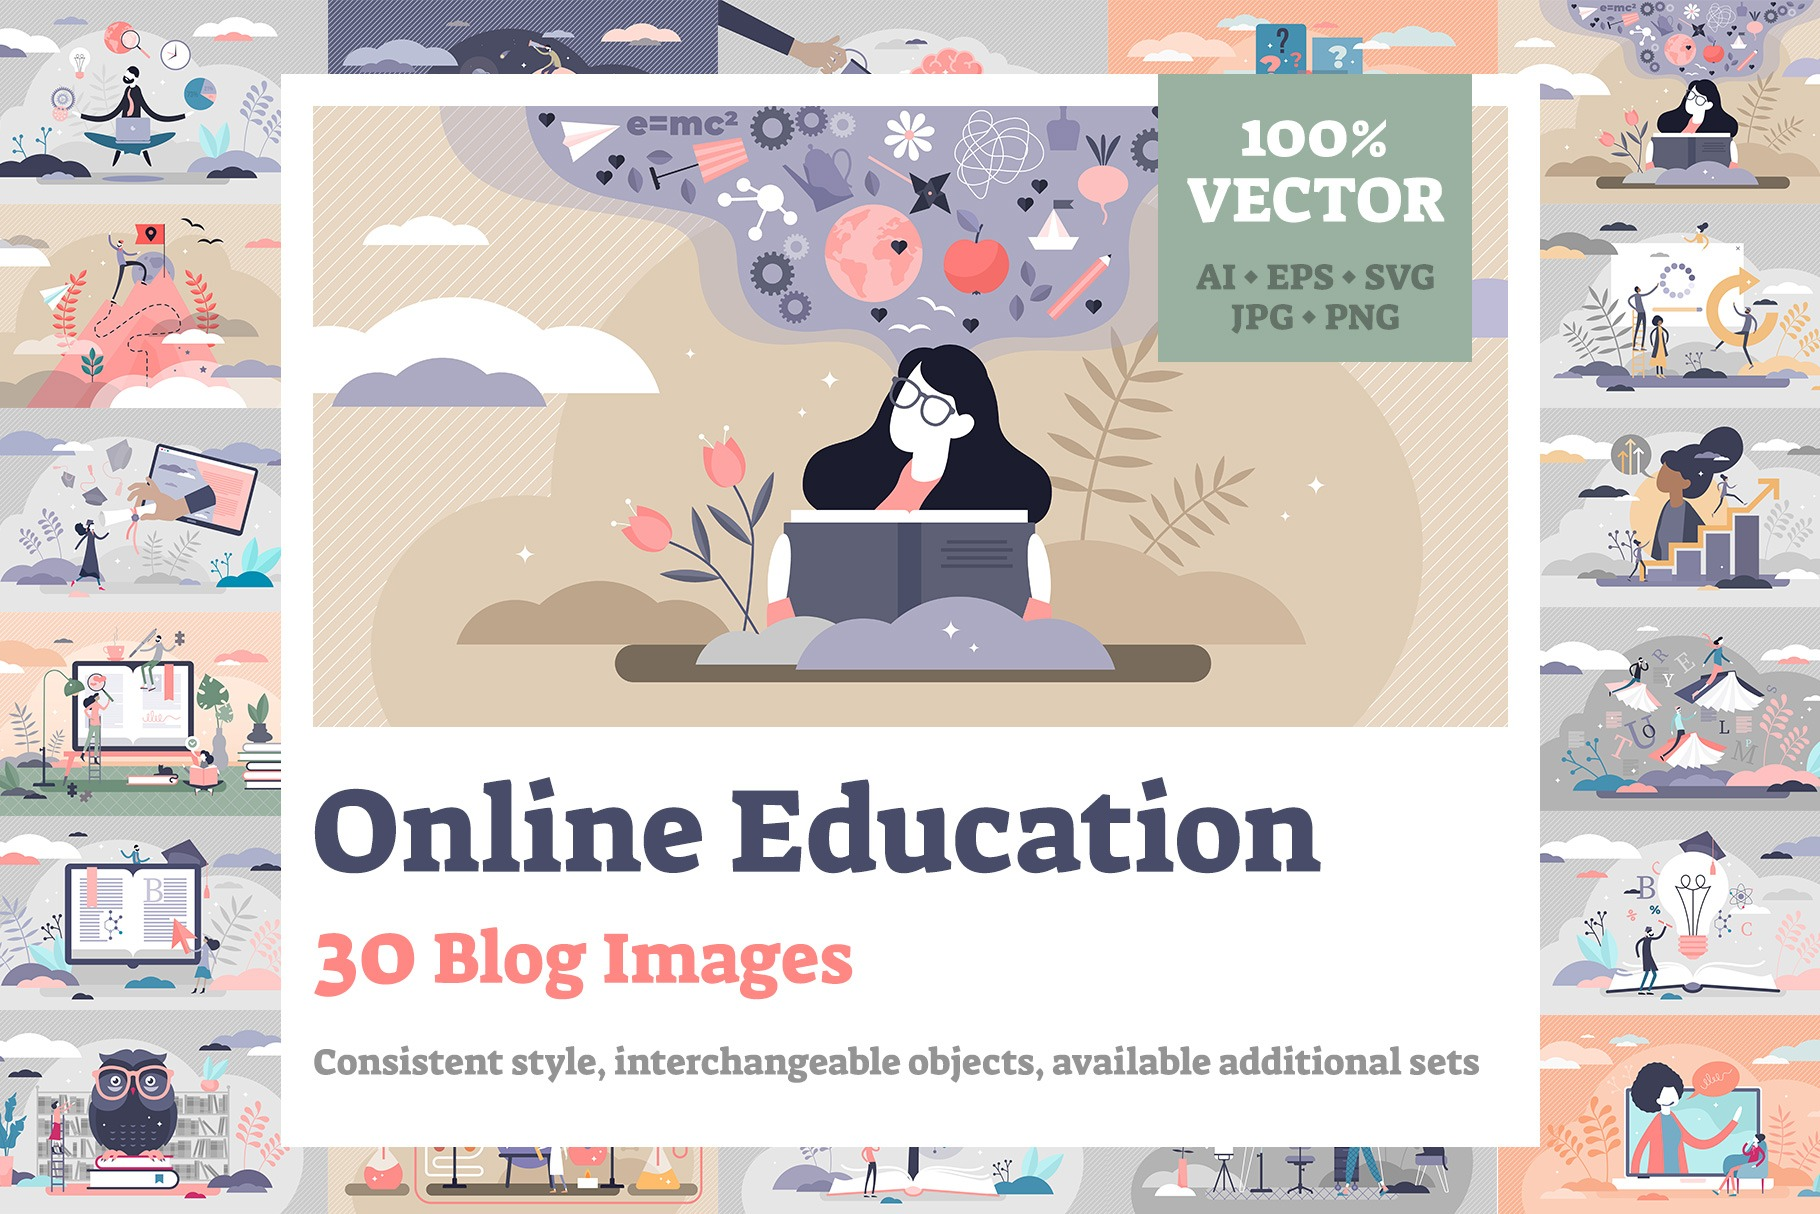 Online Education Blog Images Bundle Vol2 (30 Illustrations)